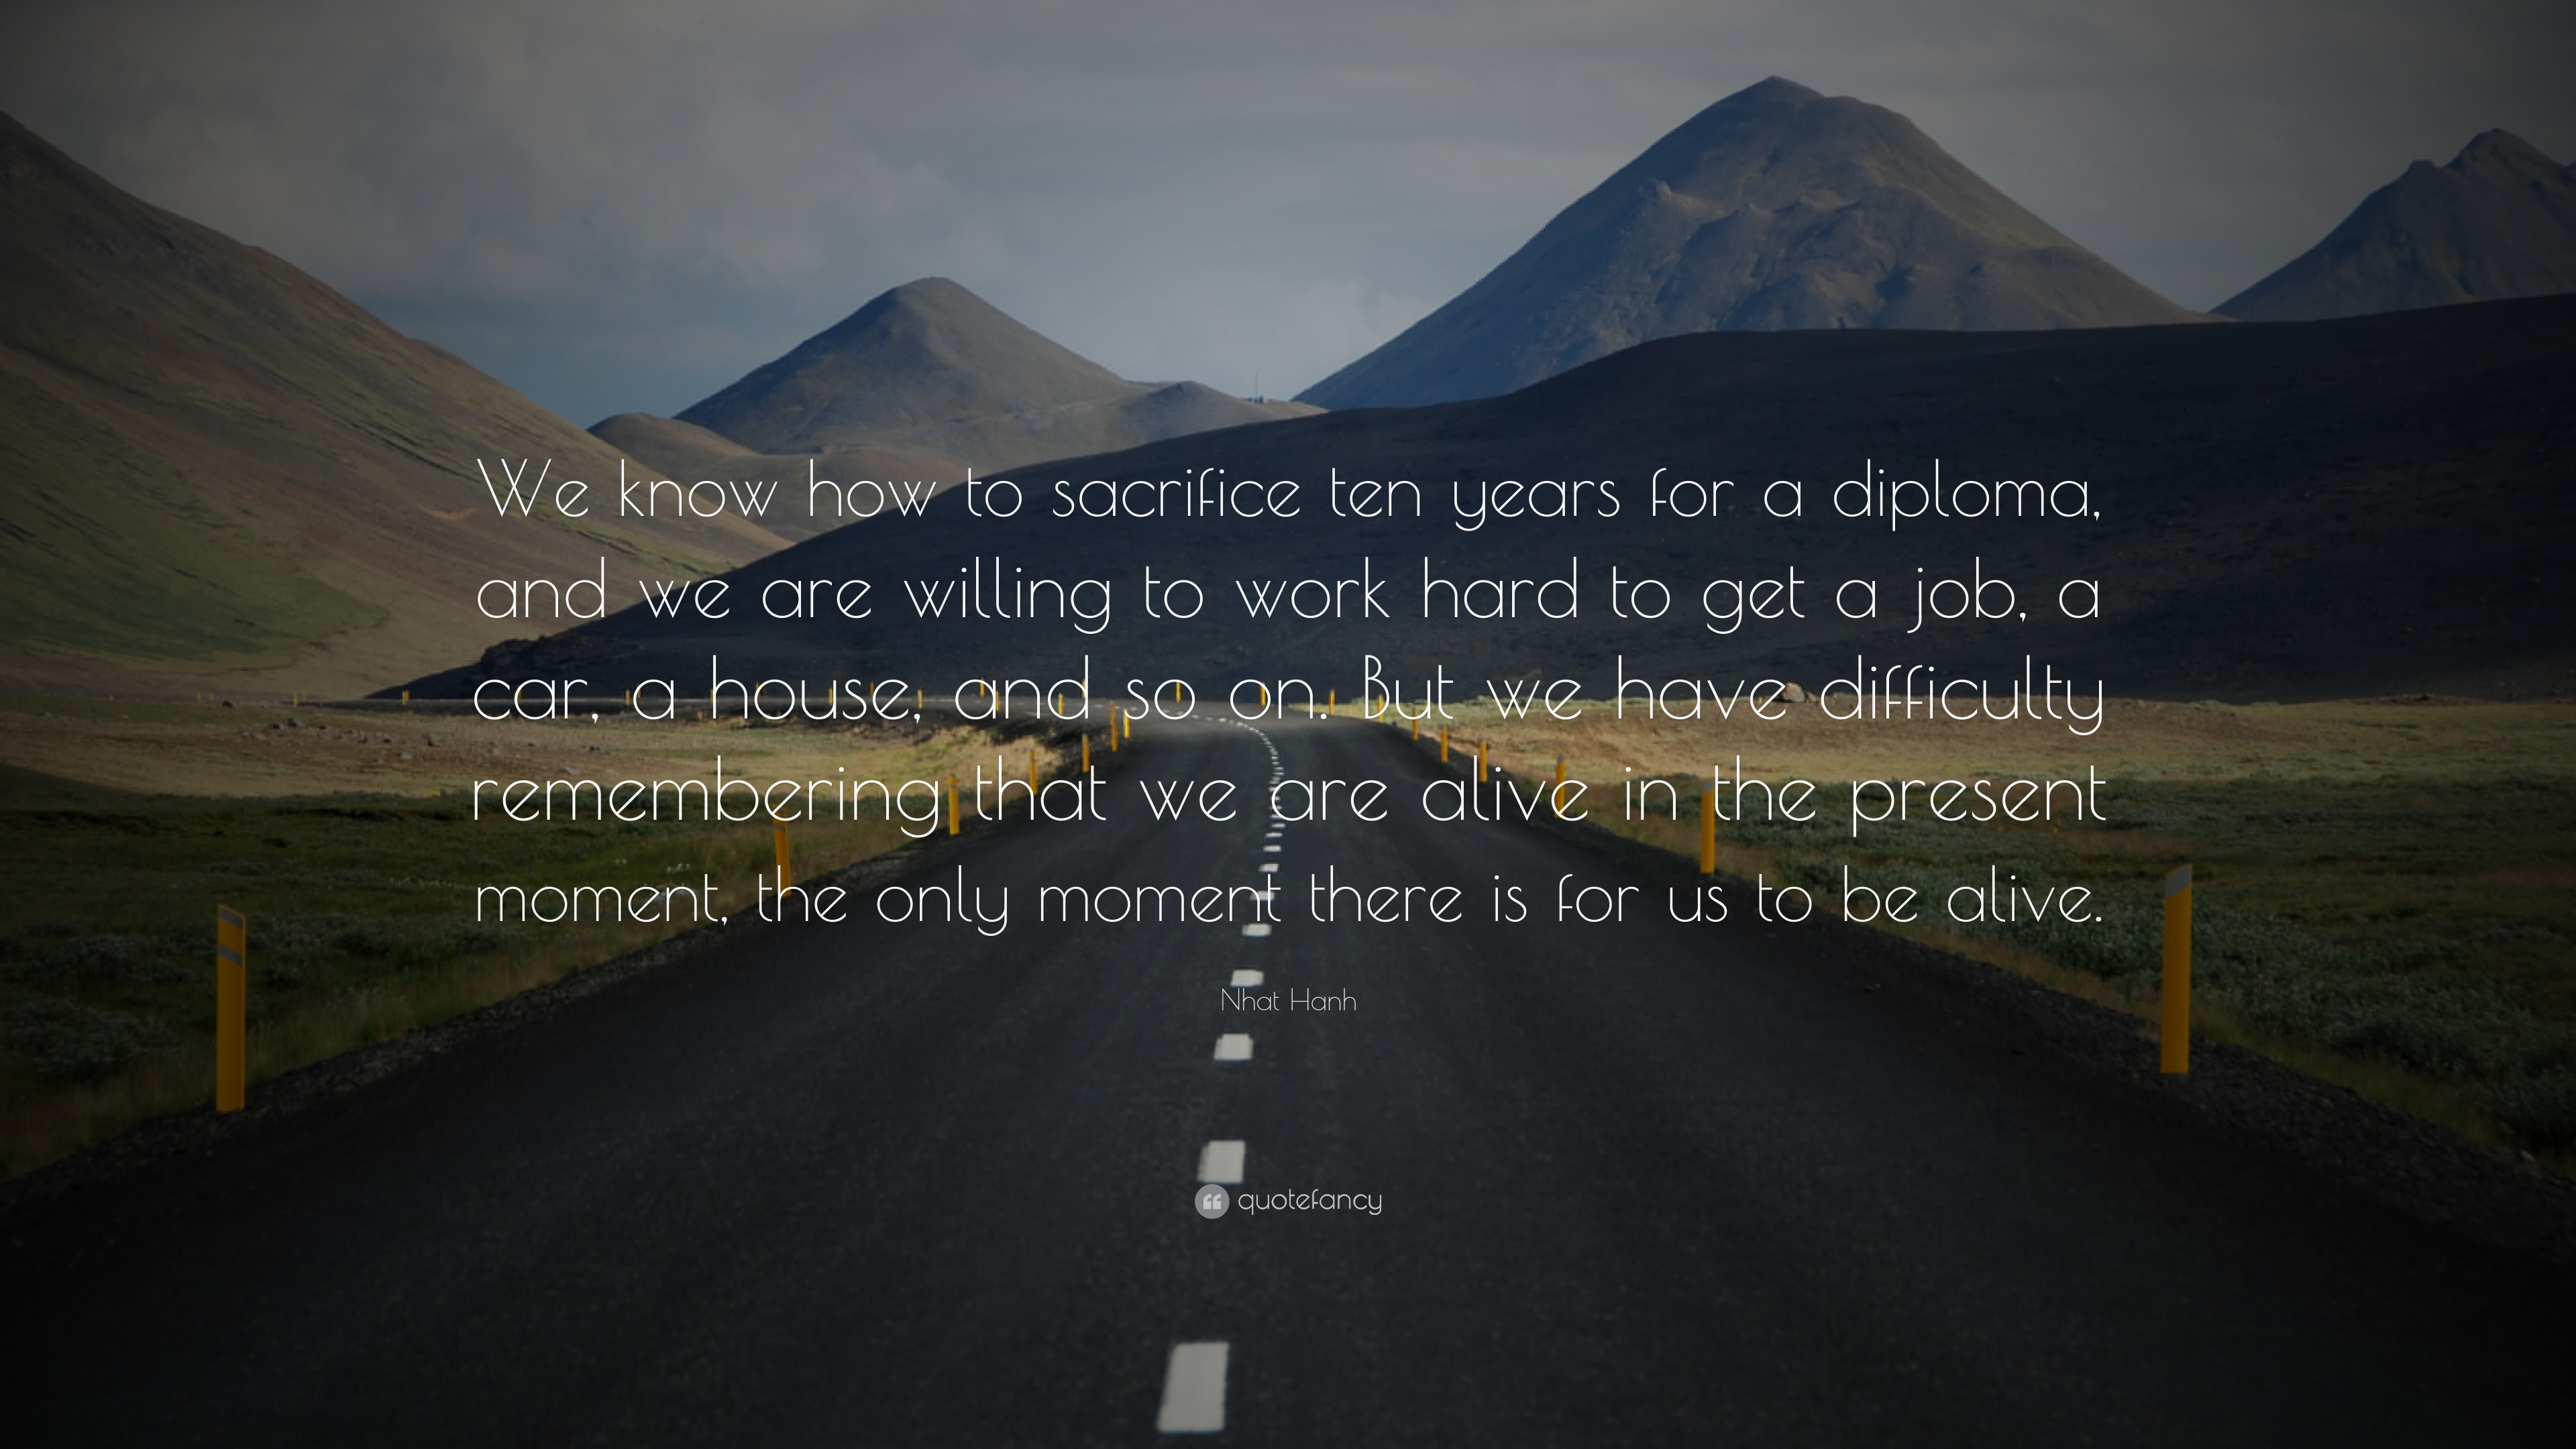 nhat hanh quote we know how to sacrifice ten years for a diploma nhat hanh quote we know how to sacrifice ten years for a diploma